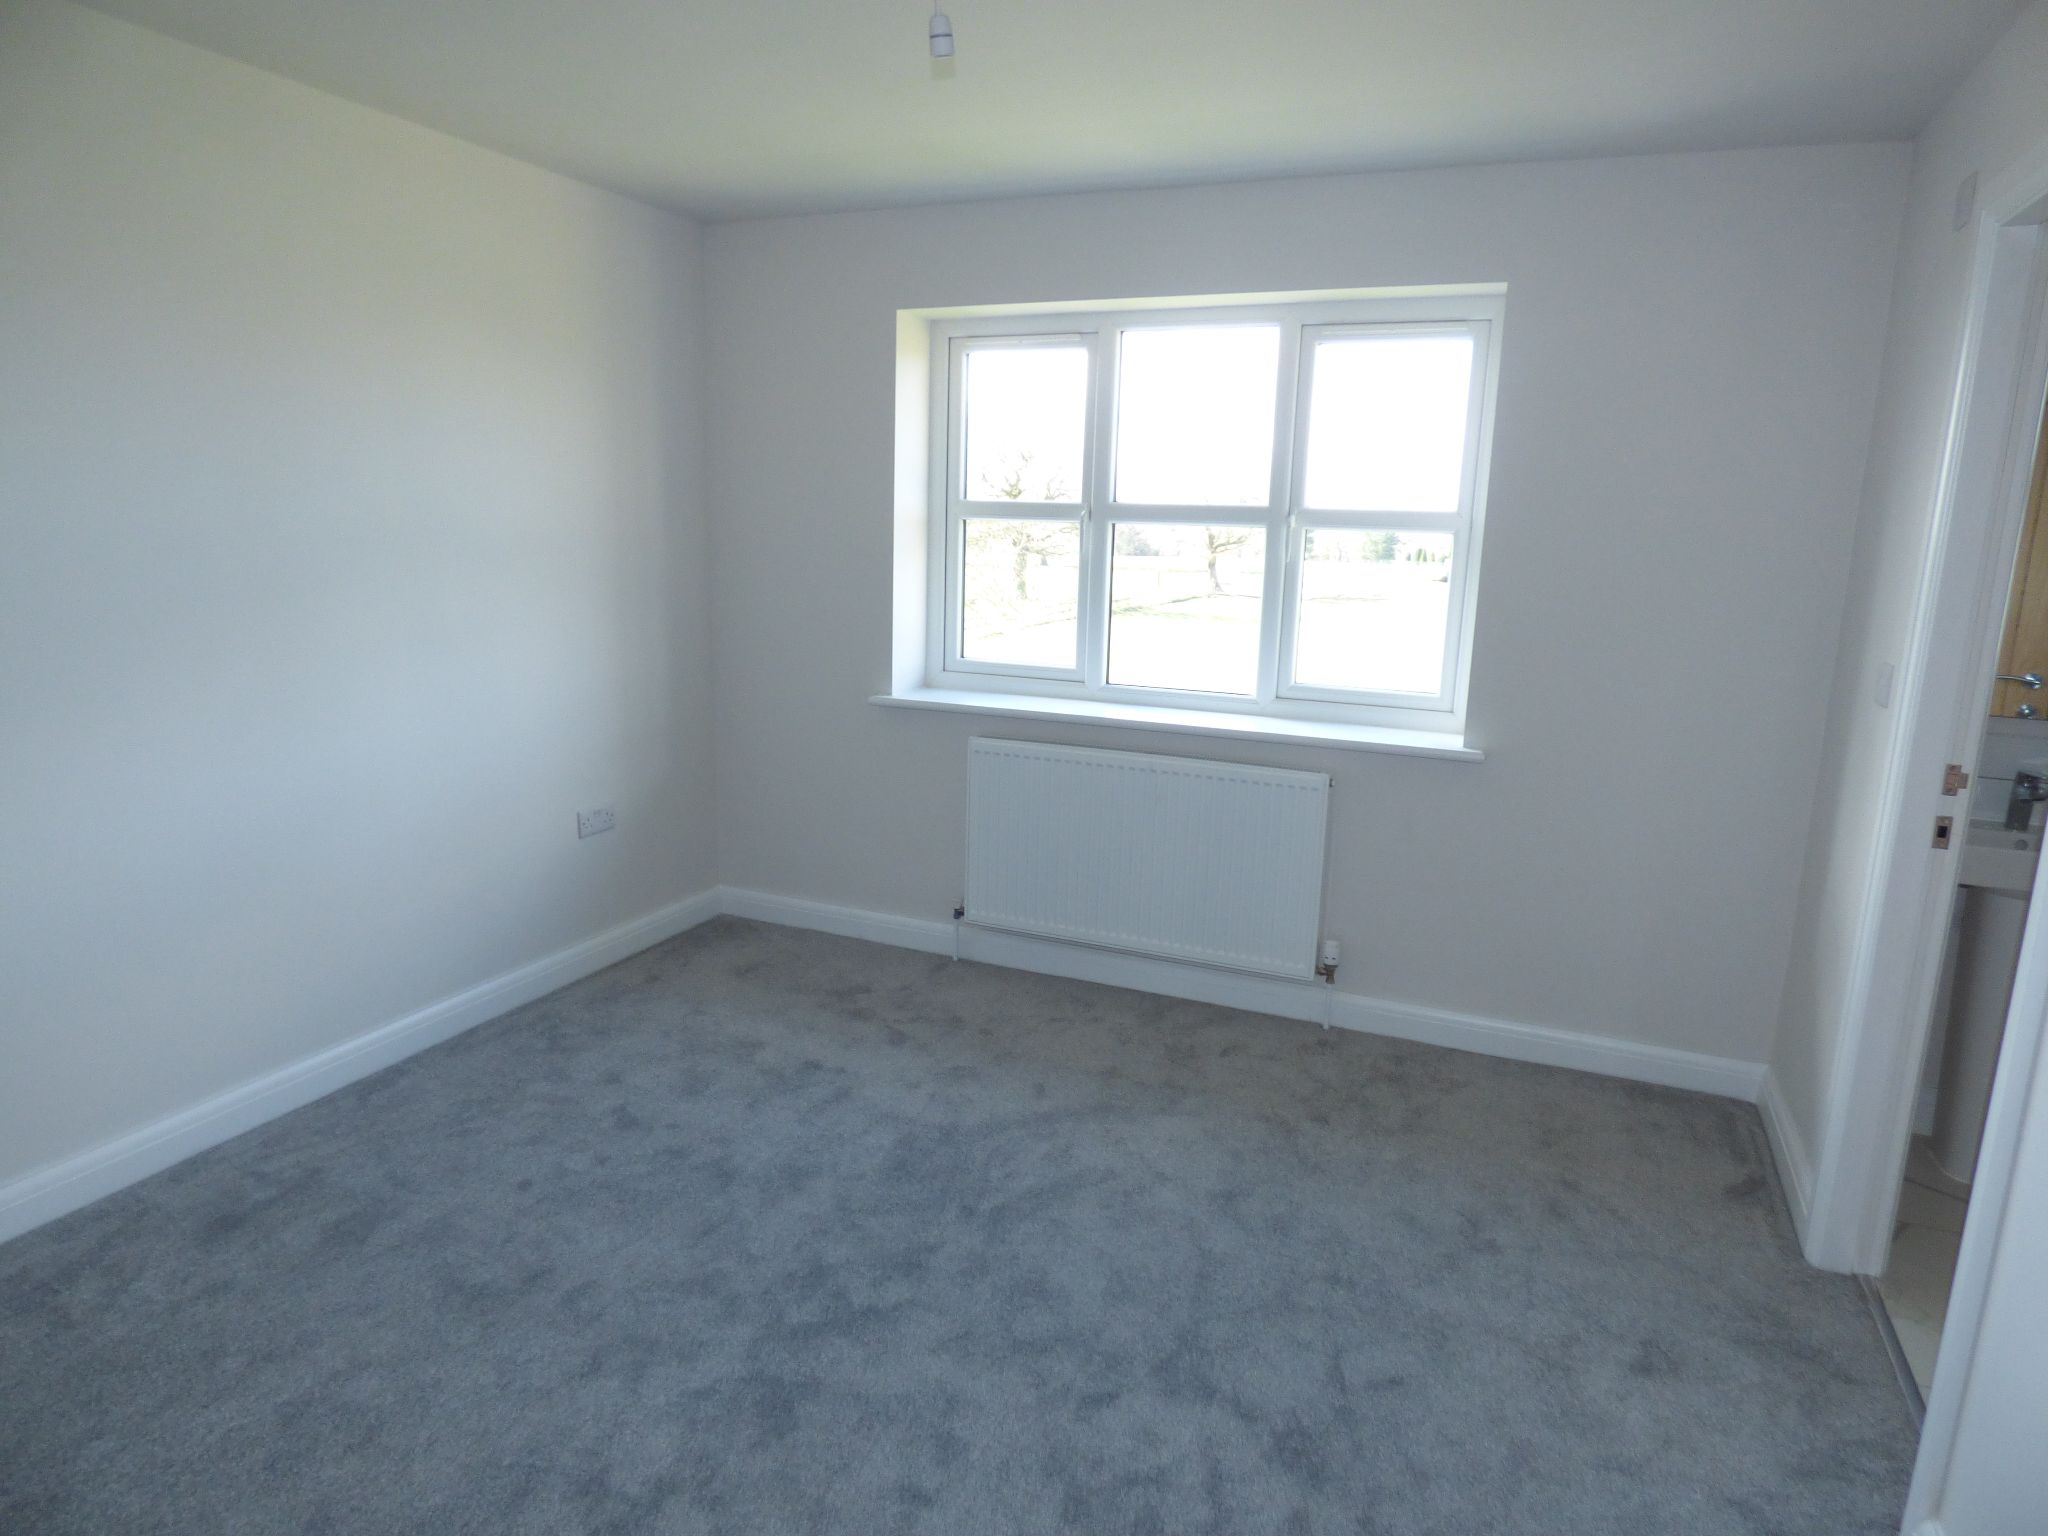 4 Bedroom Mews House For Sale - Photograph 9